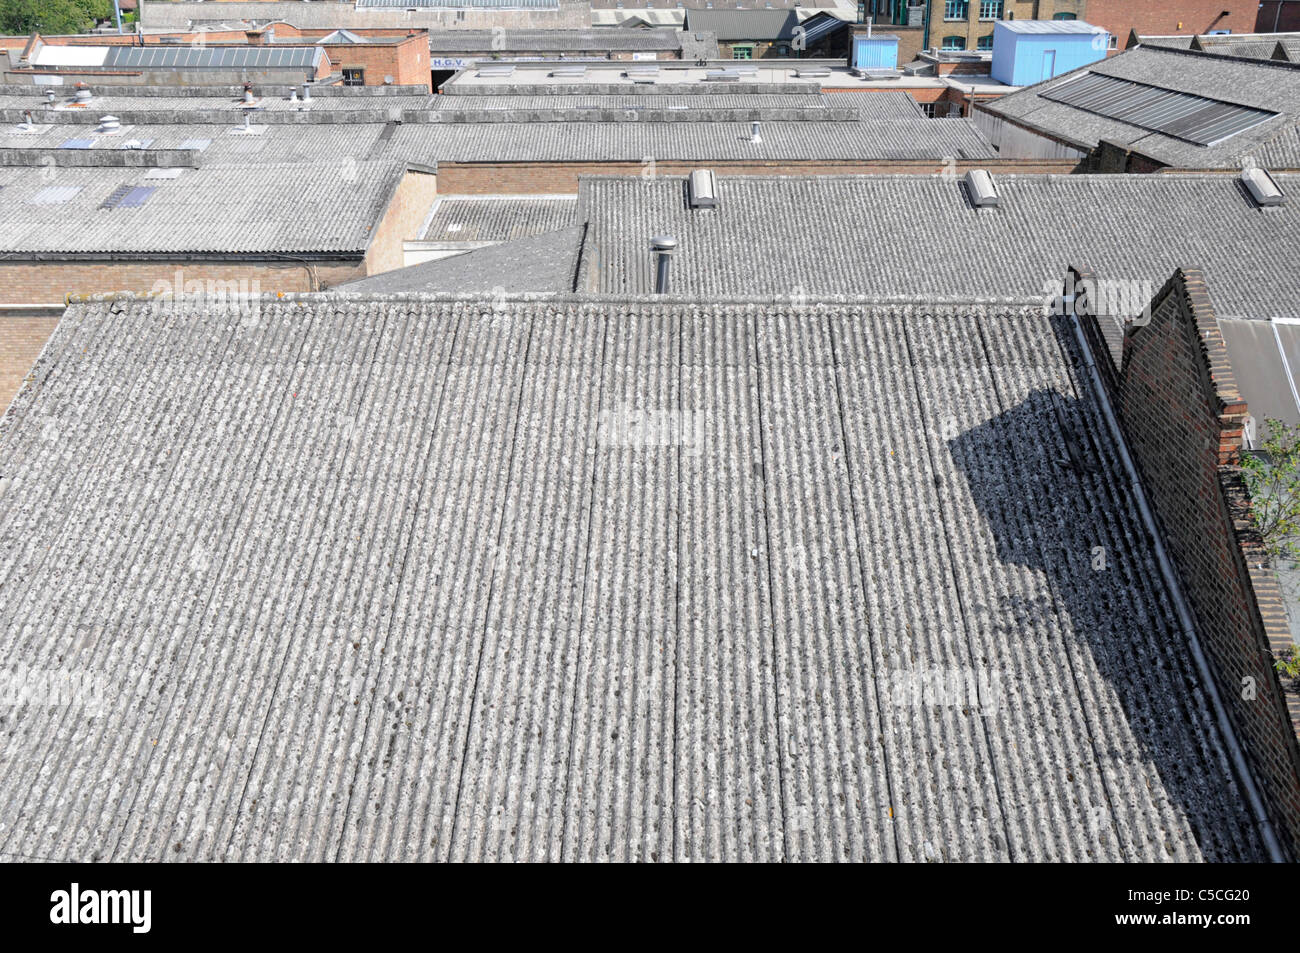 Corrugated asbestos roofing on industrial units - Stock Image